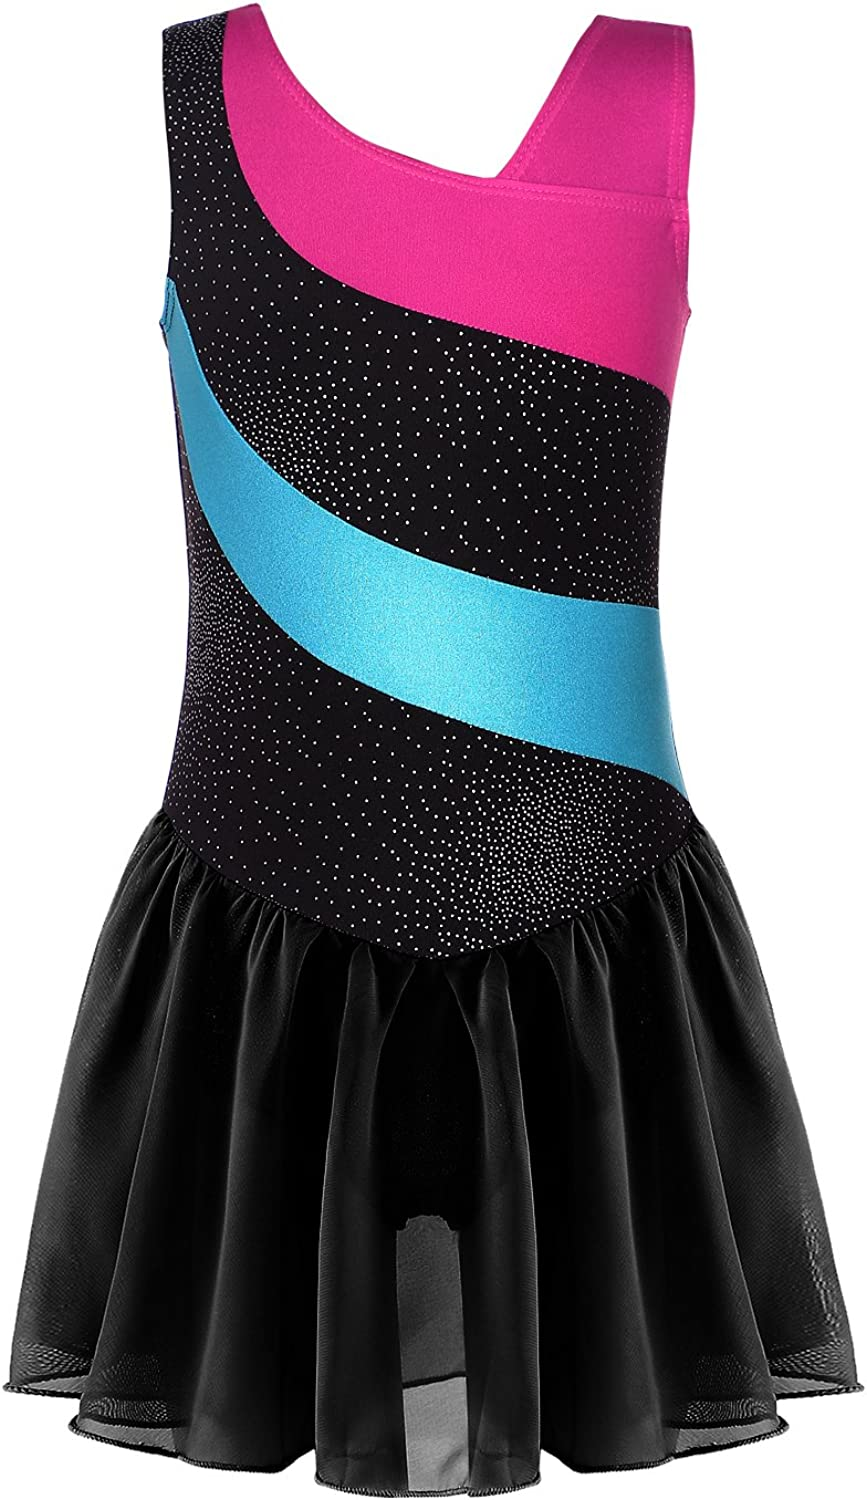 Leotard for Girls Gymnastics Camisole Tank Dance Clothes Shiny Pretty